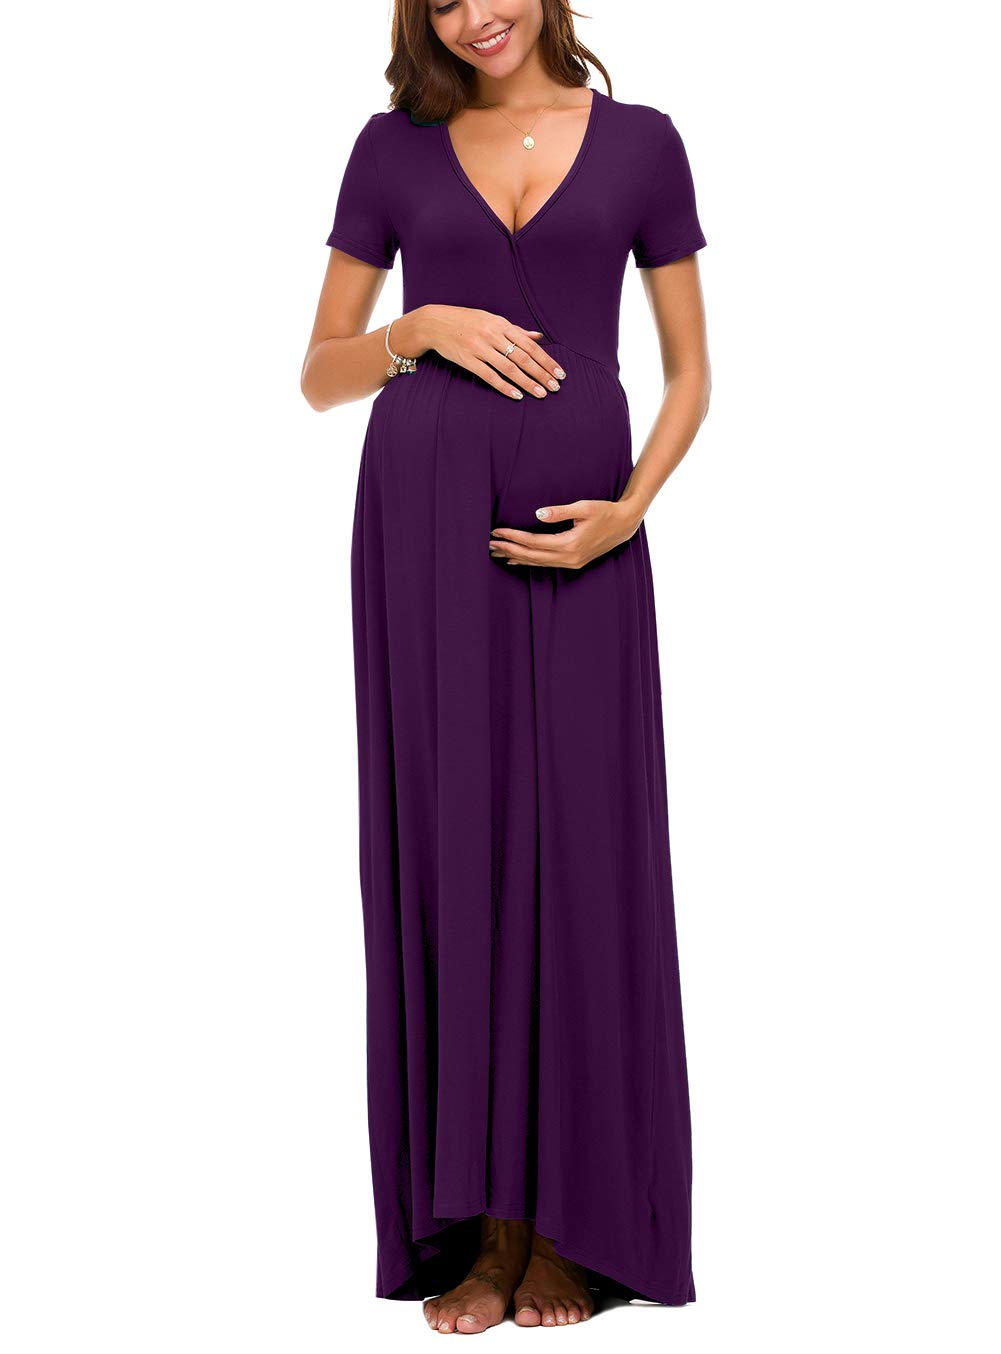 Octohol Women's Faux Wrap Maternity Dress V-Neck Casual Long Maxi Dress(Purple X-Large)